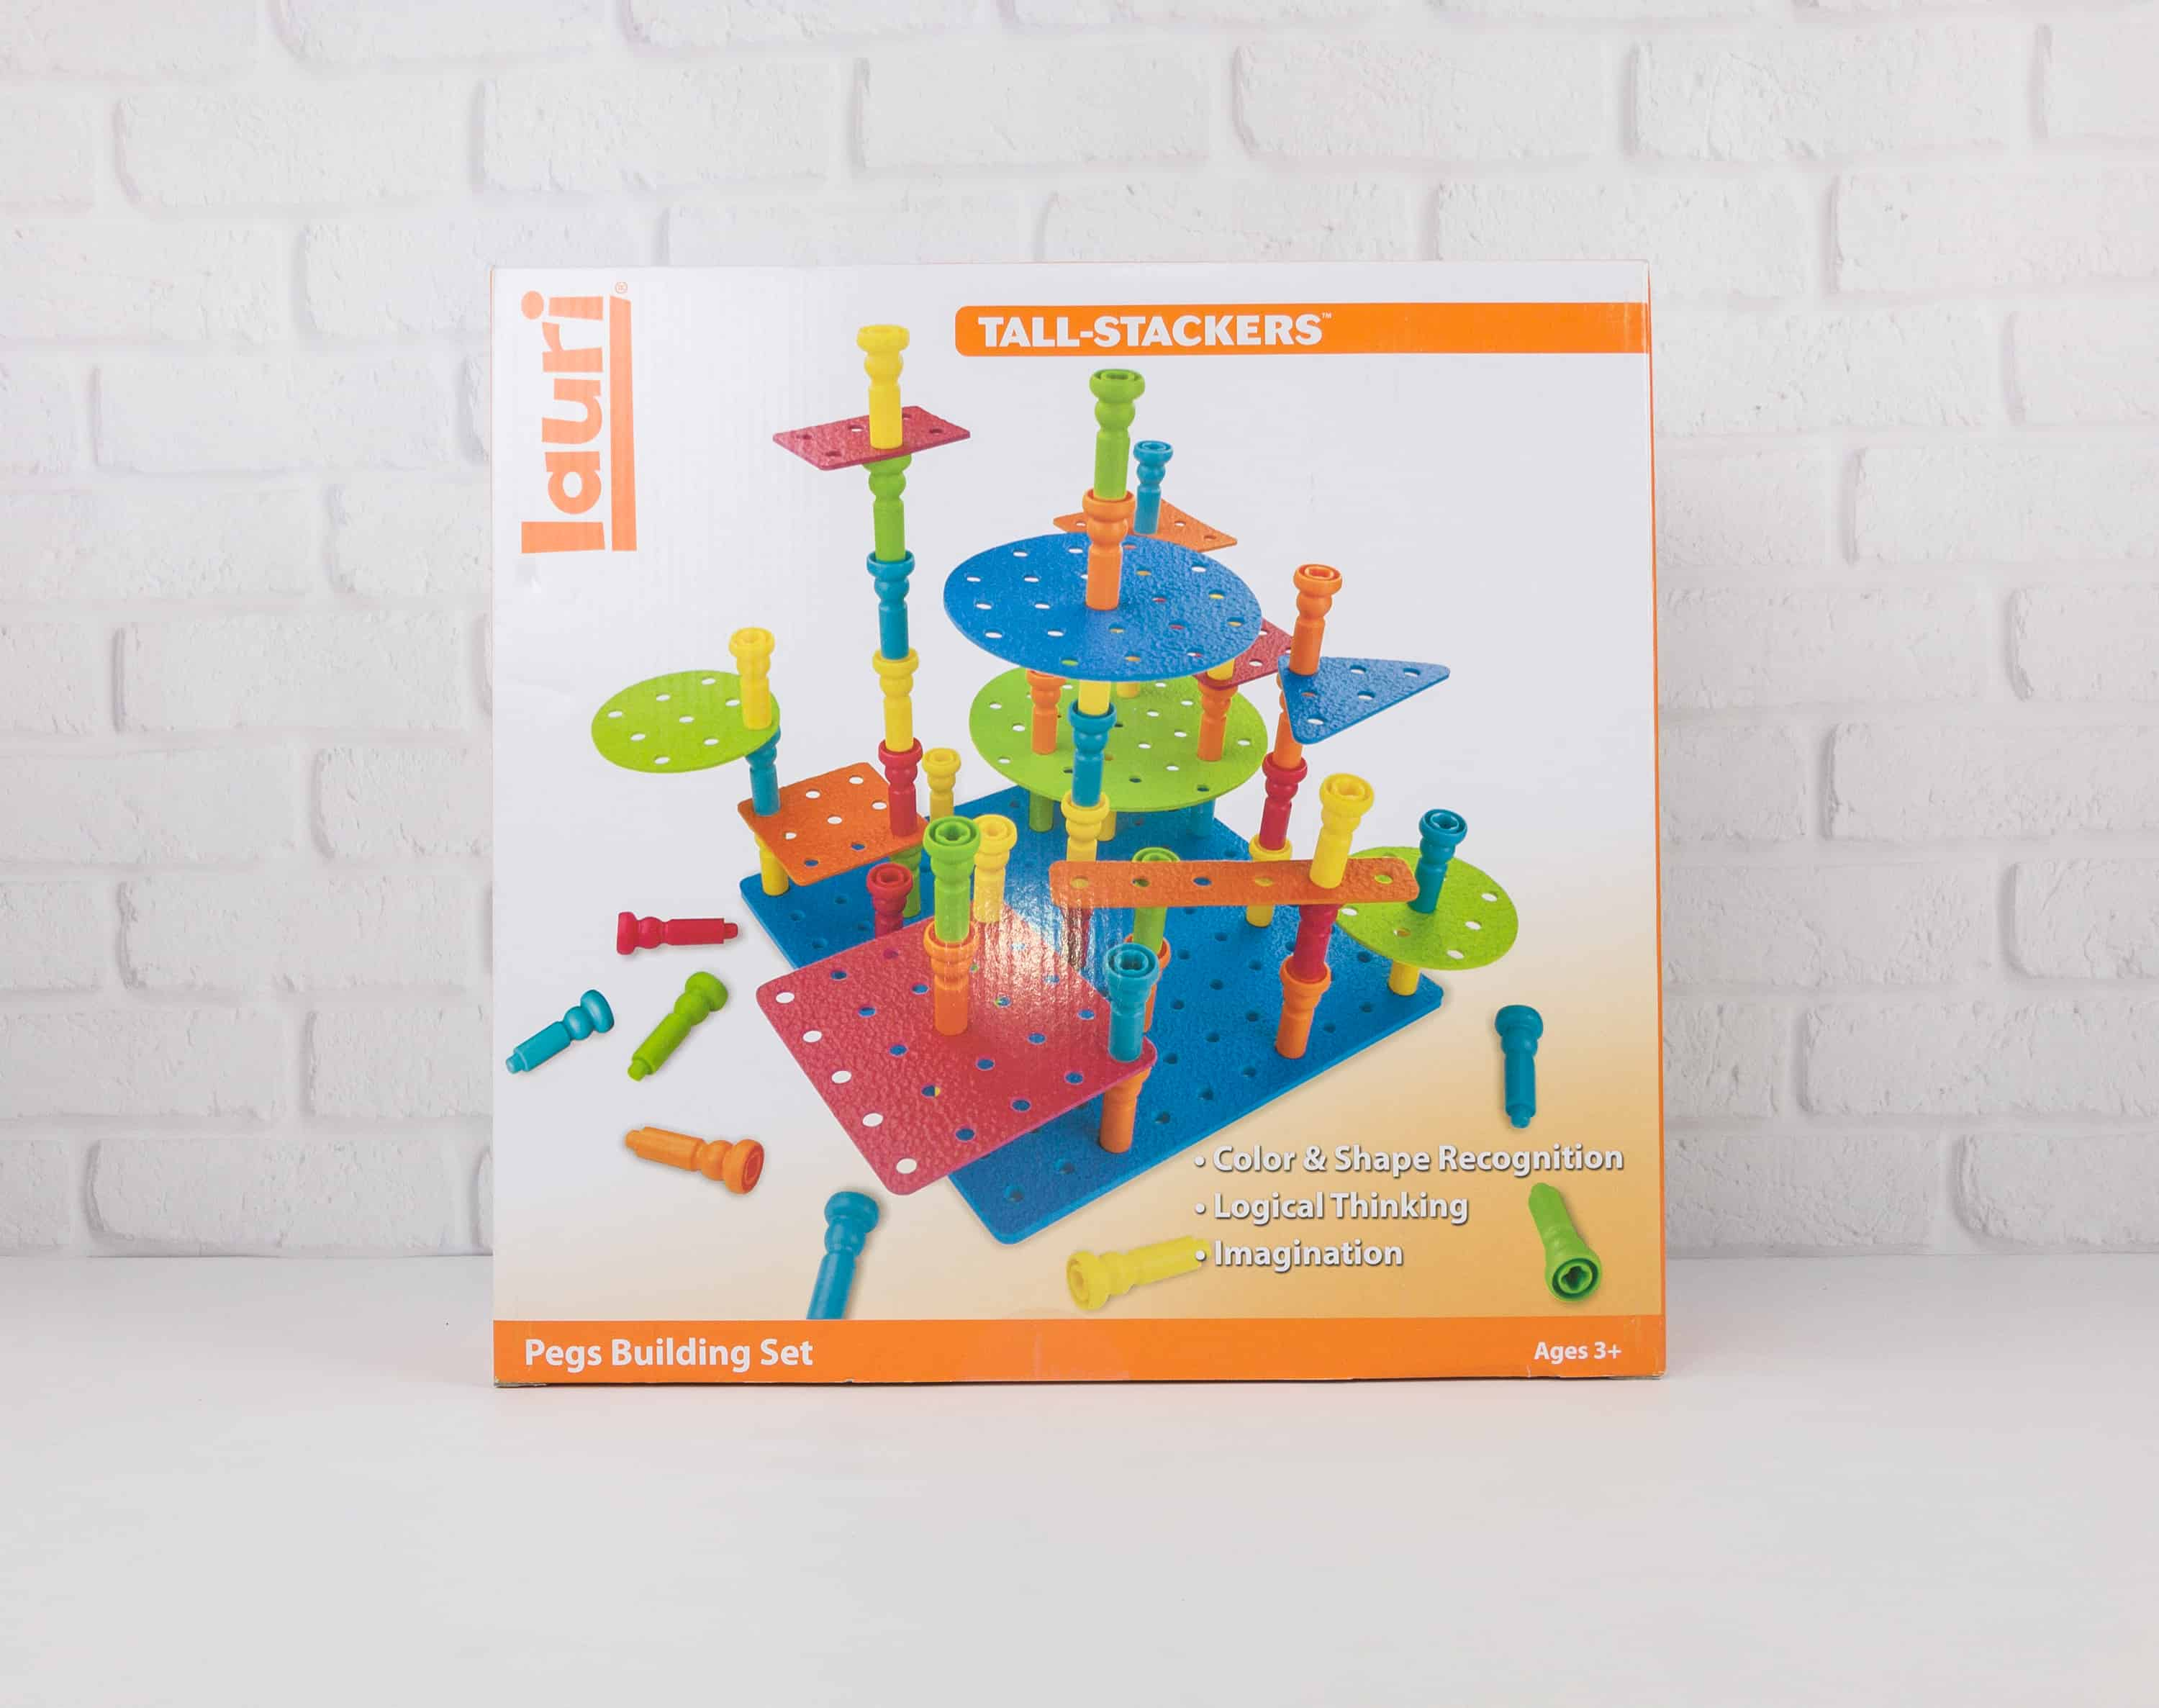 Amazon STEM Toy Club Reviews hello subscription